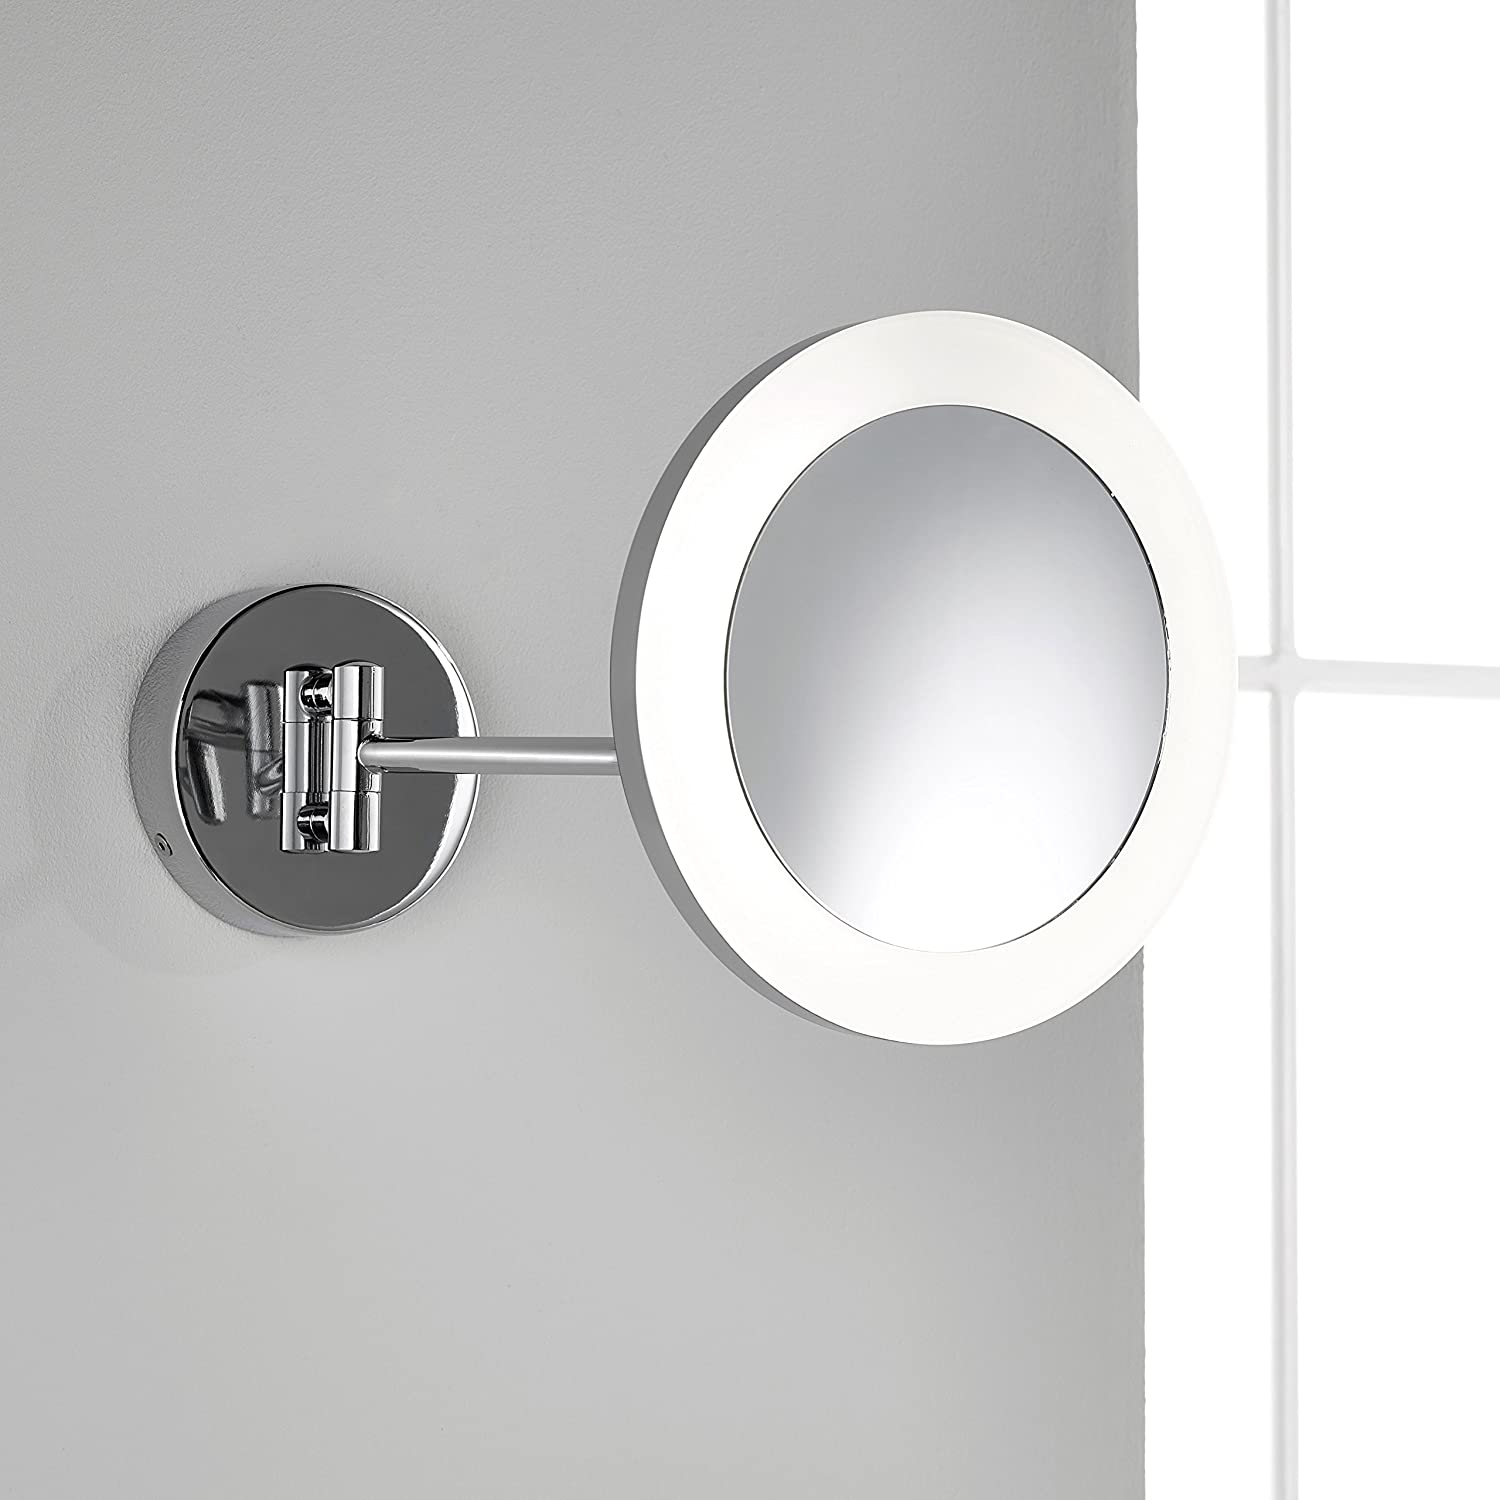 Pebble Grey; Roca LED Bathroom Vanity Mirror - Wall Mounted, 3x  Magnification, Toggle Switch & Pivoting Arm: Amazon.co.uk: Kitchen & Home